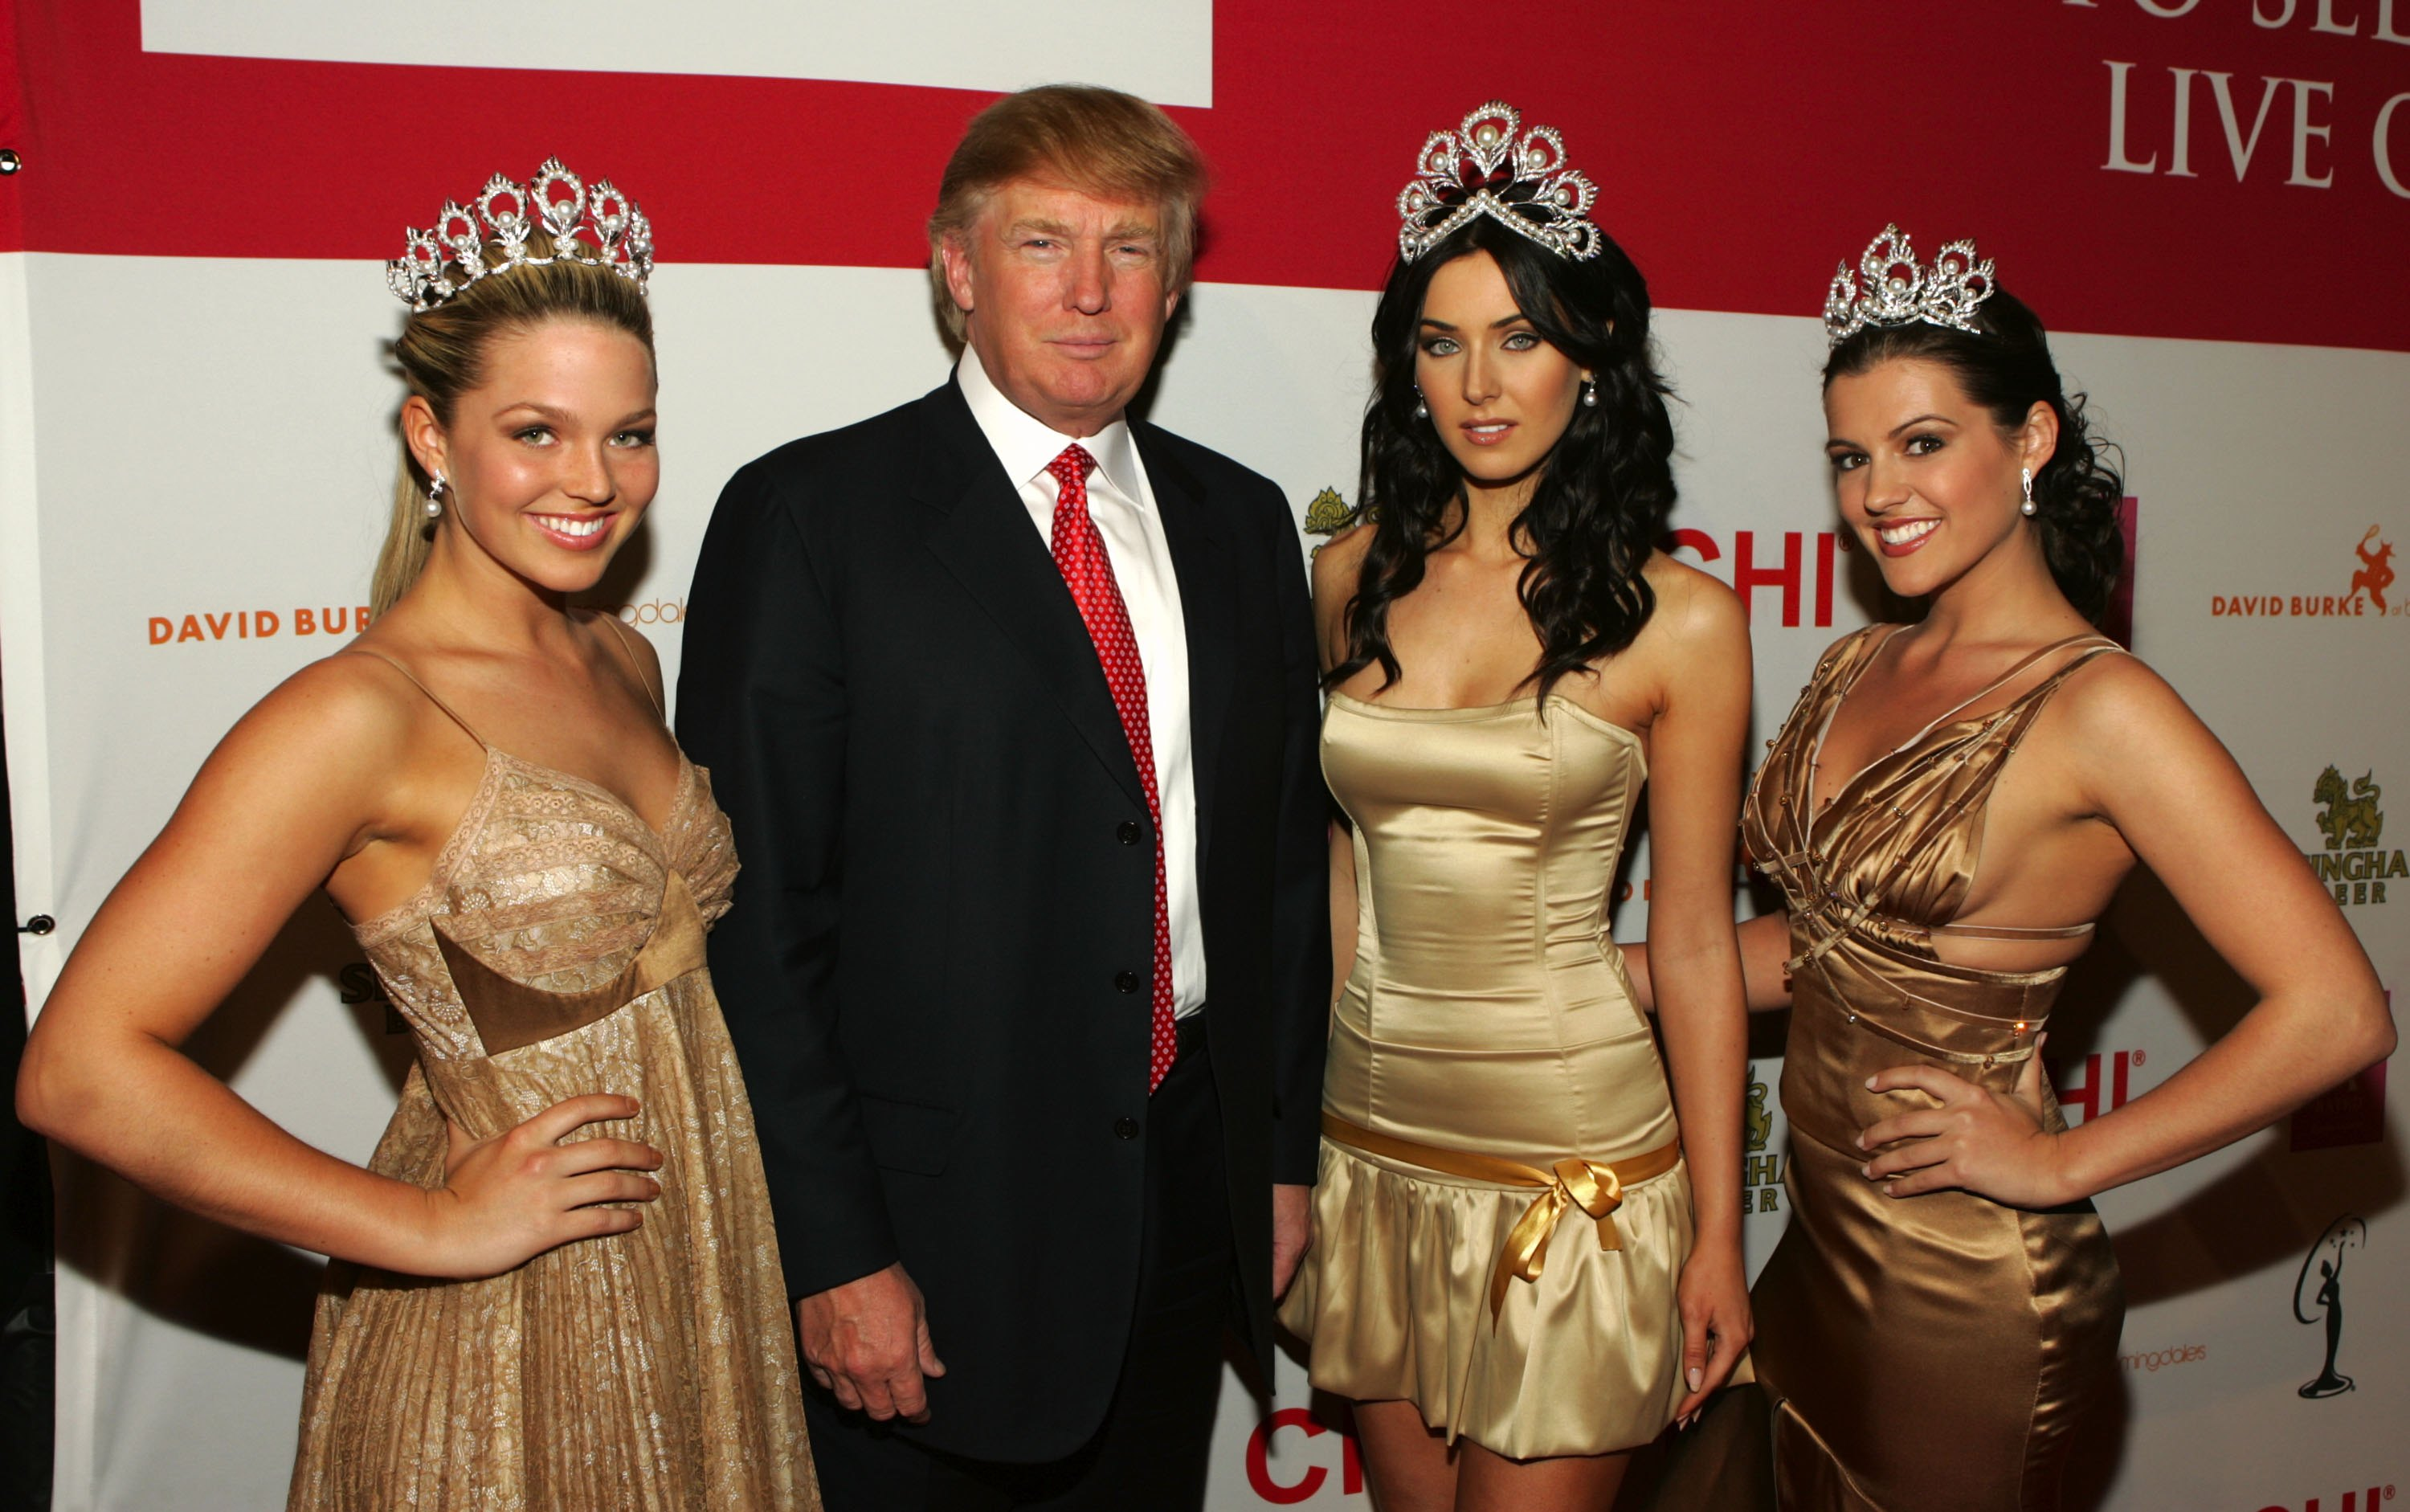 NEW YORK- APRIL 18  Miss USA 2005 Chelsea Cooley Donald Trump Miss Universe 2005 Natalie Glebova and Miss Teen USA 2005 Allie La Force attend